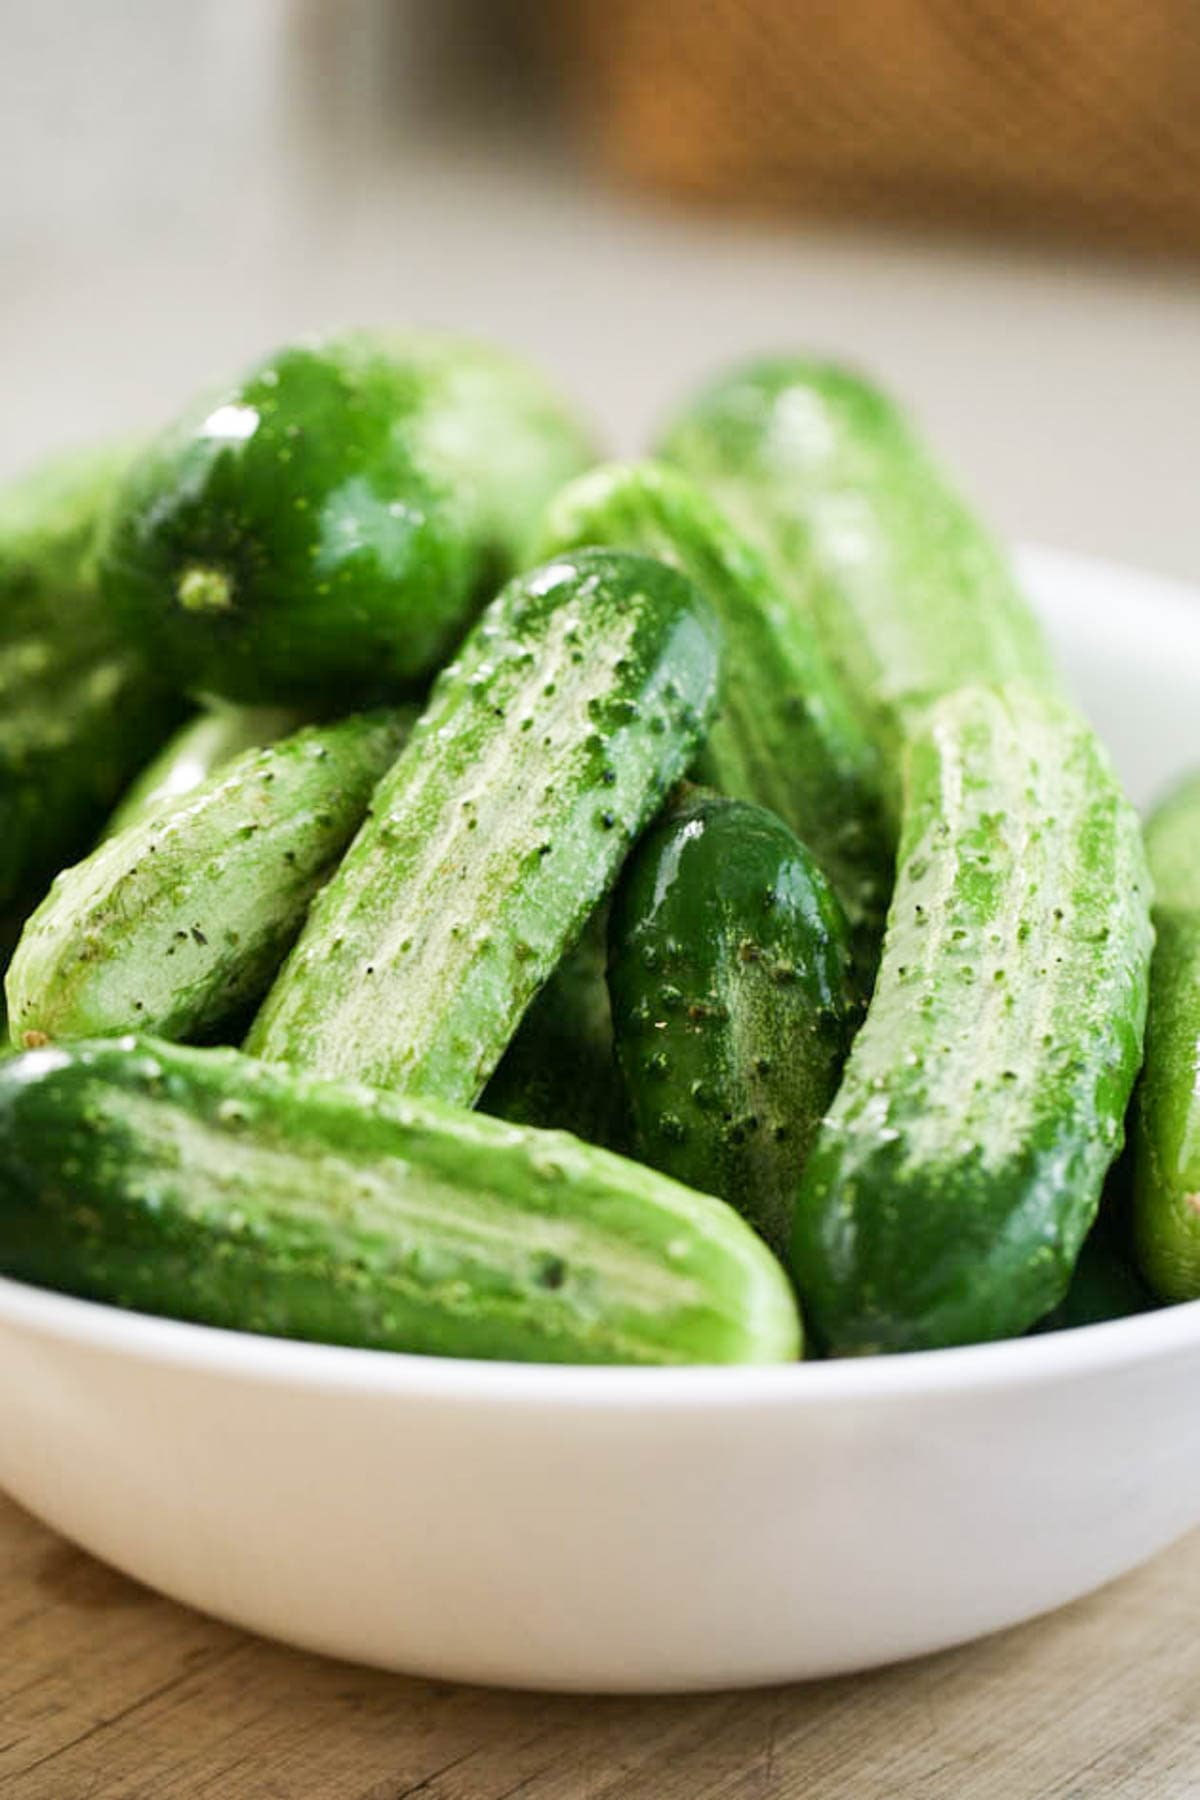 A bowl of pickling cucumbers.